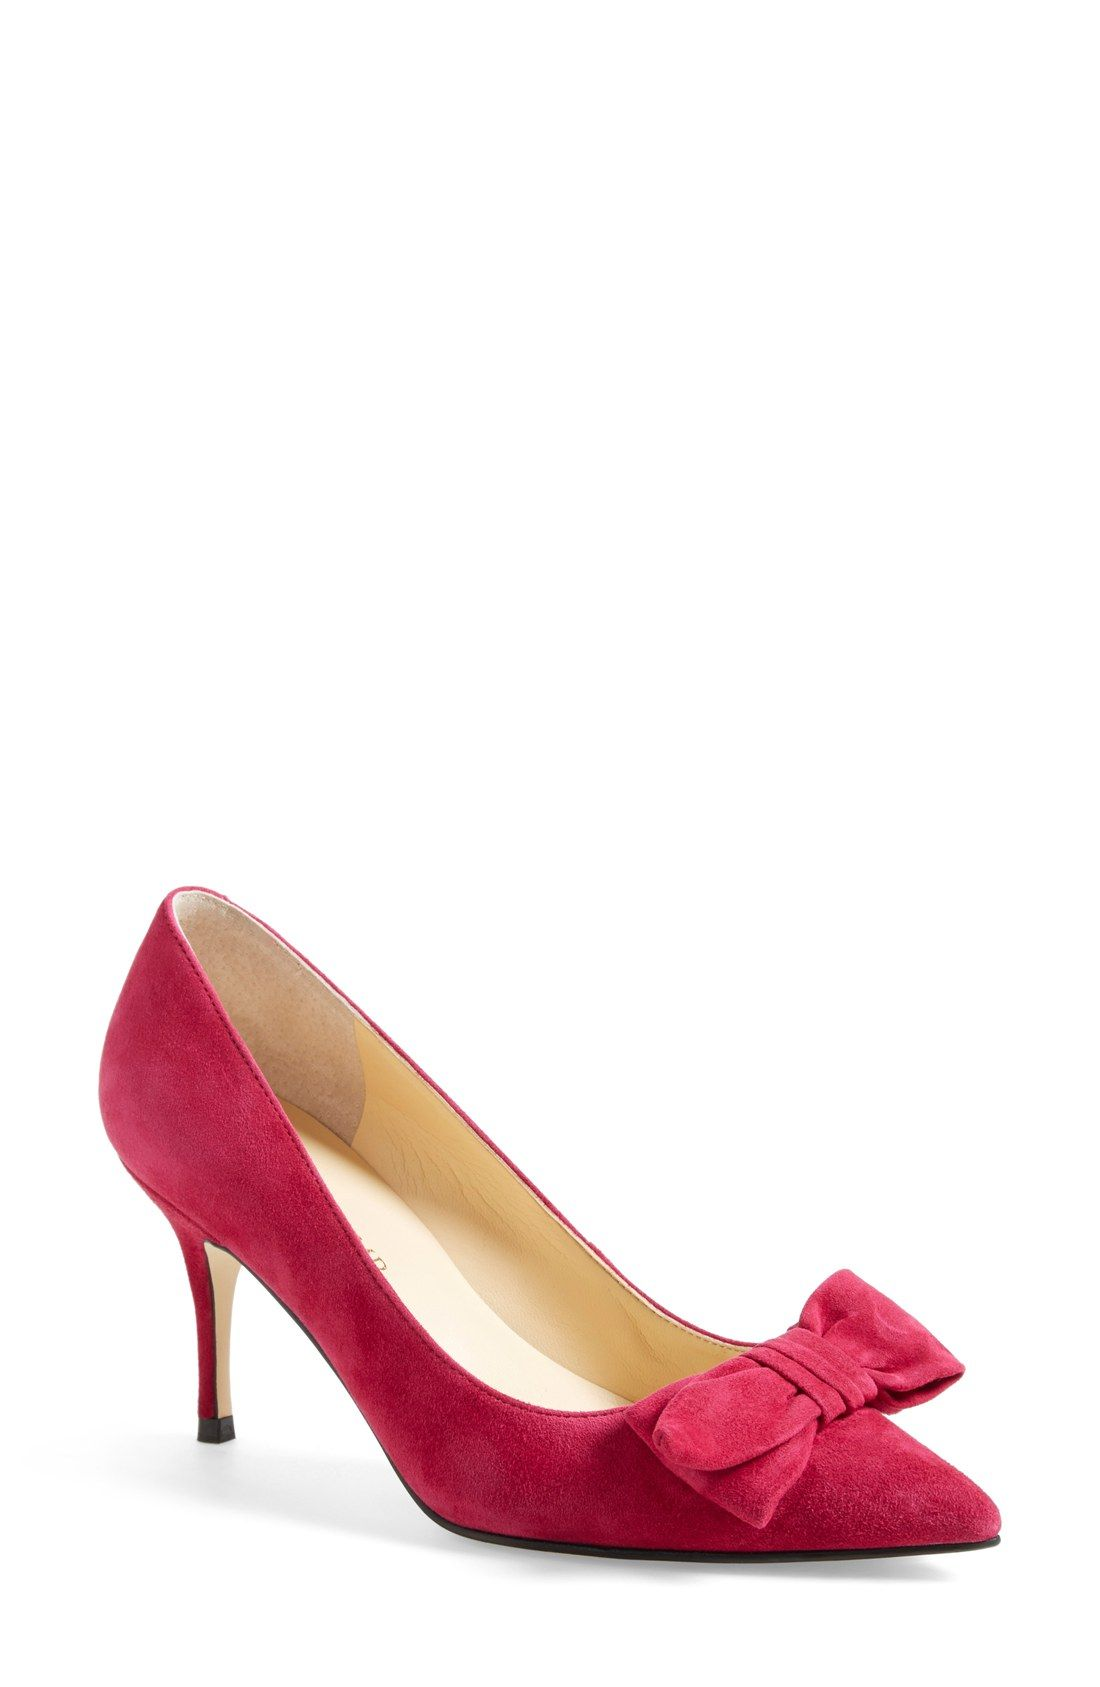 721511ff862 Ivanka Trump 'Benny' Pointy Toe Bow Pump (Women) | Clothes in 2019 ...